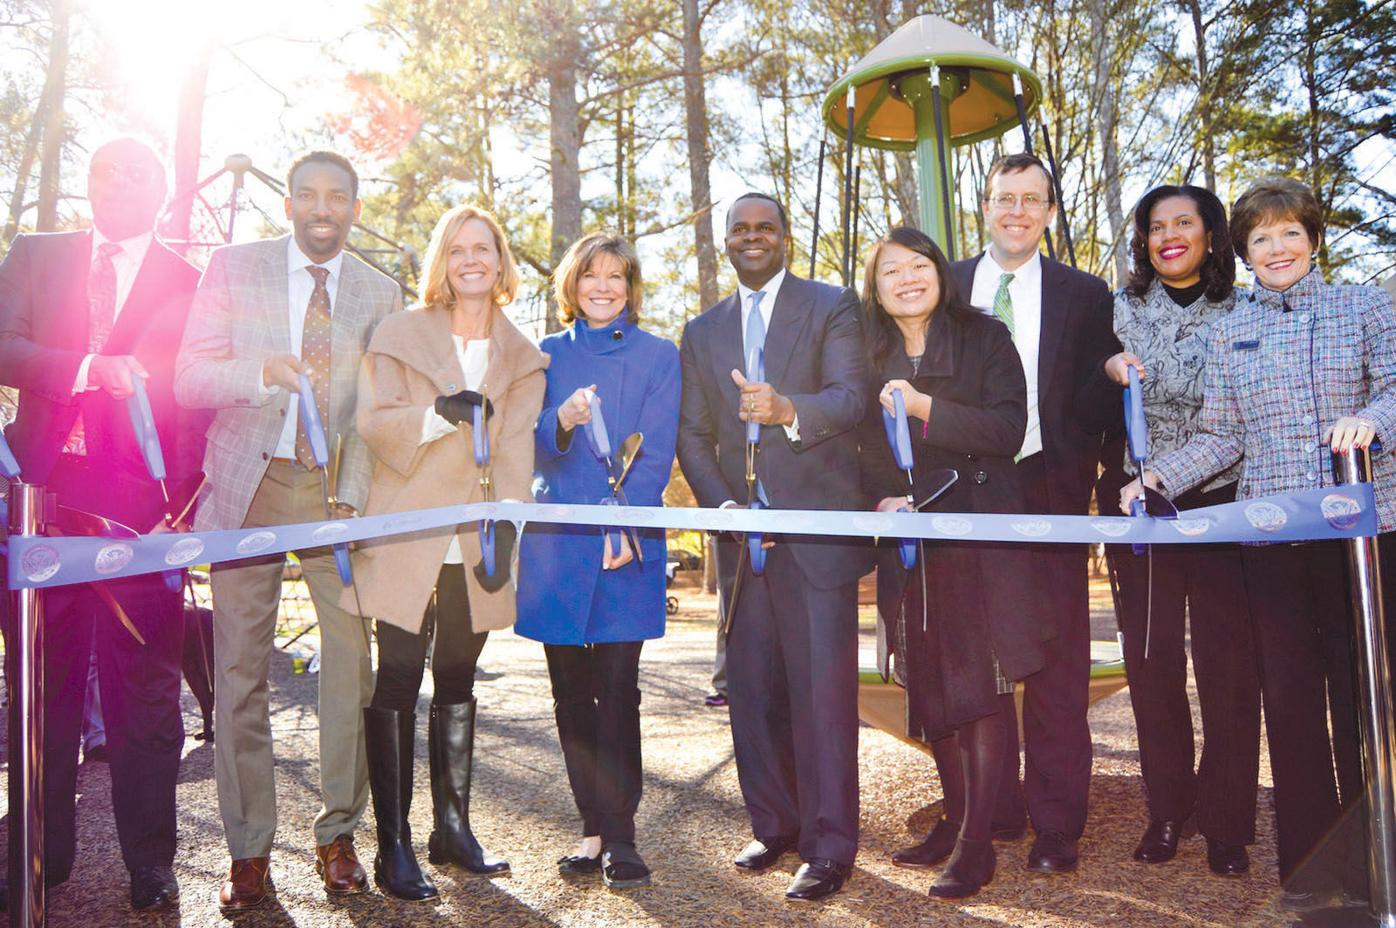 Full playground opens 1 group at ribbon-cutting ceremony